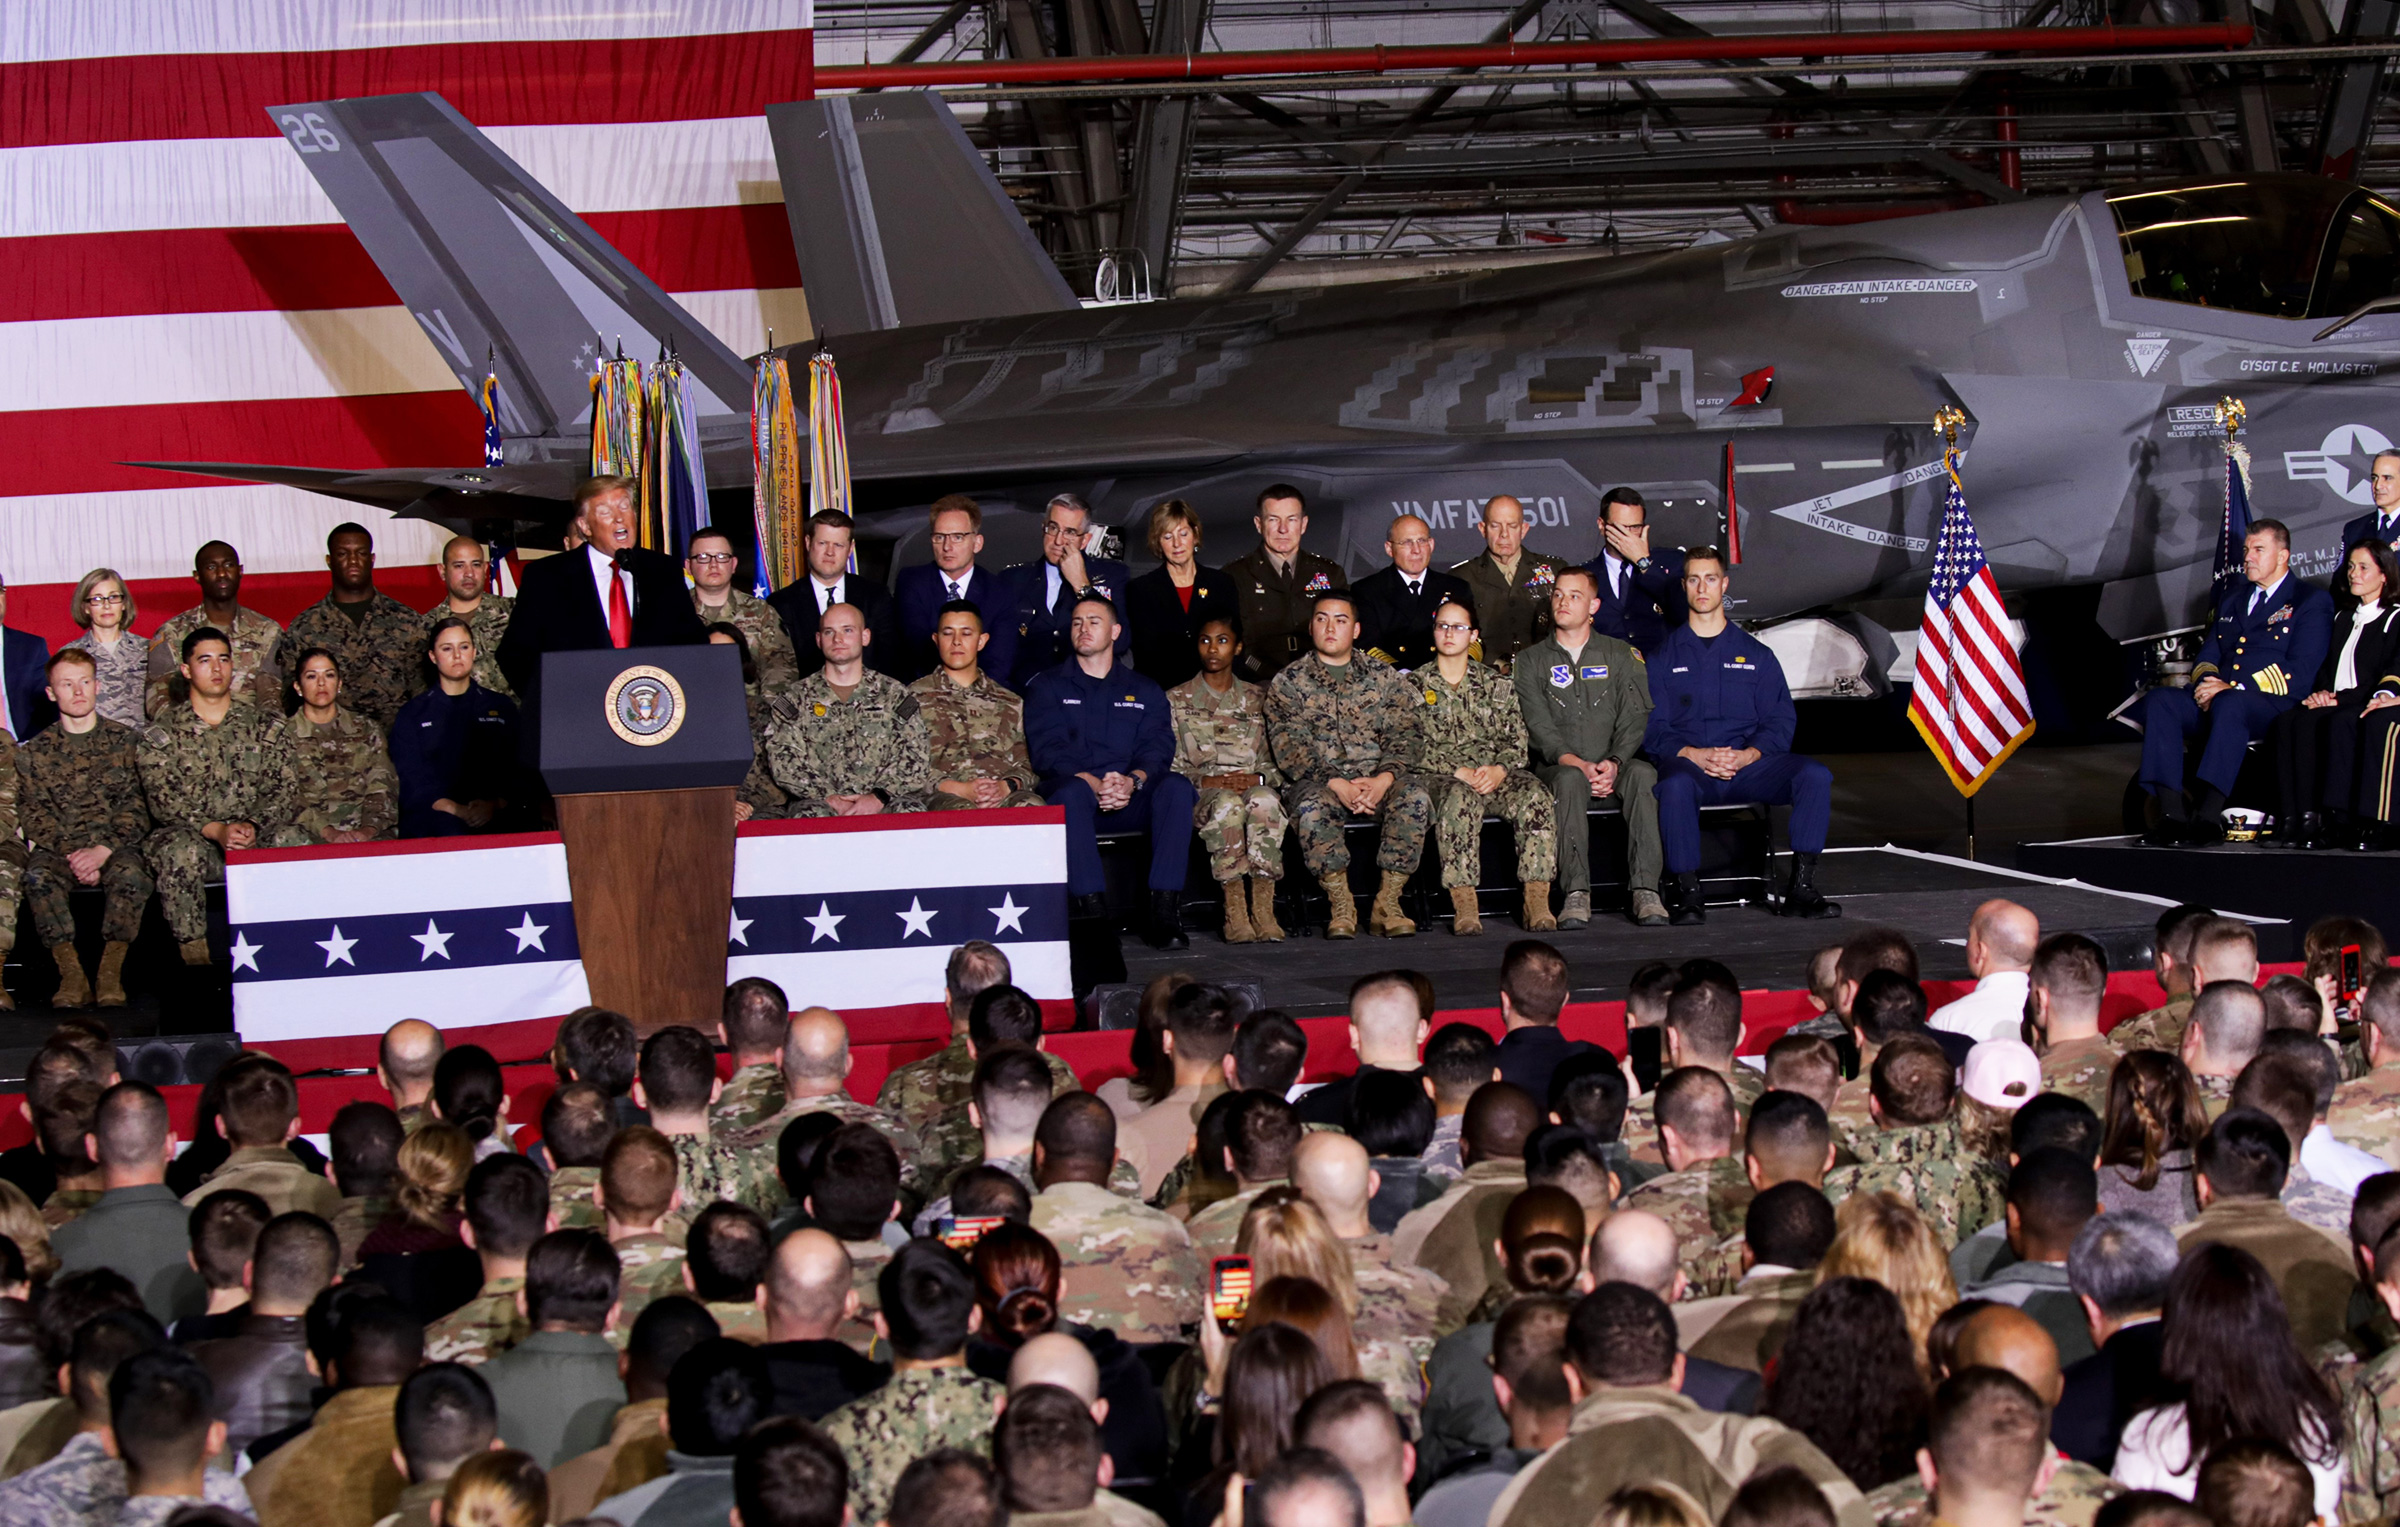 President Donald Trump makes a speech as he attends a signing ceremony at Joint Base Andrews, in Maryland, on Dec. 20, 2019. U.S.